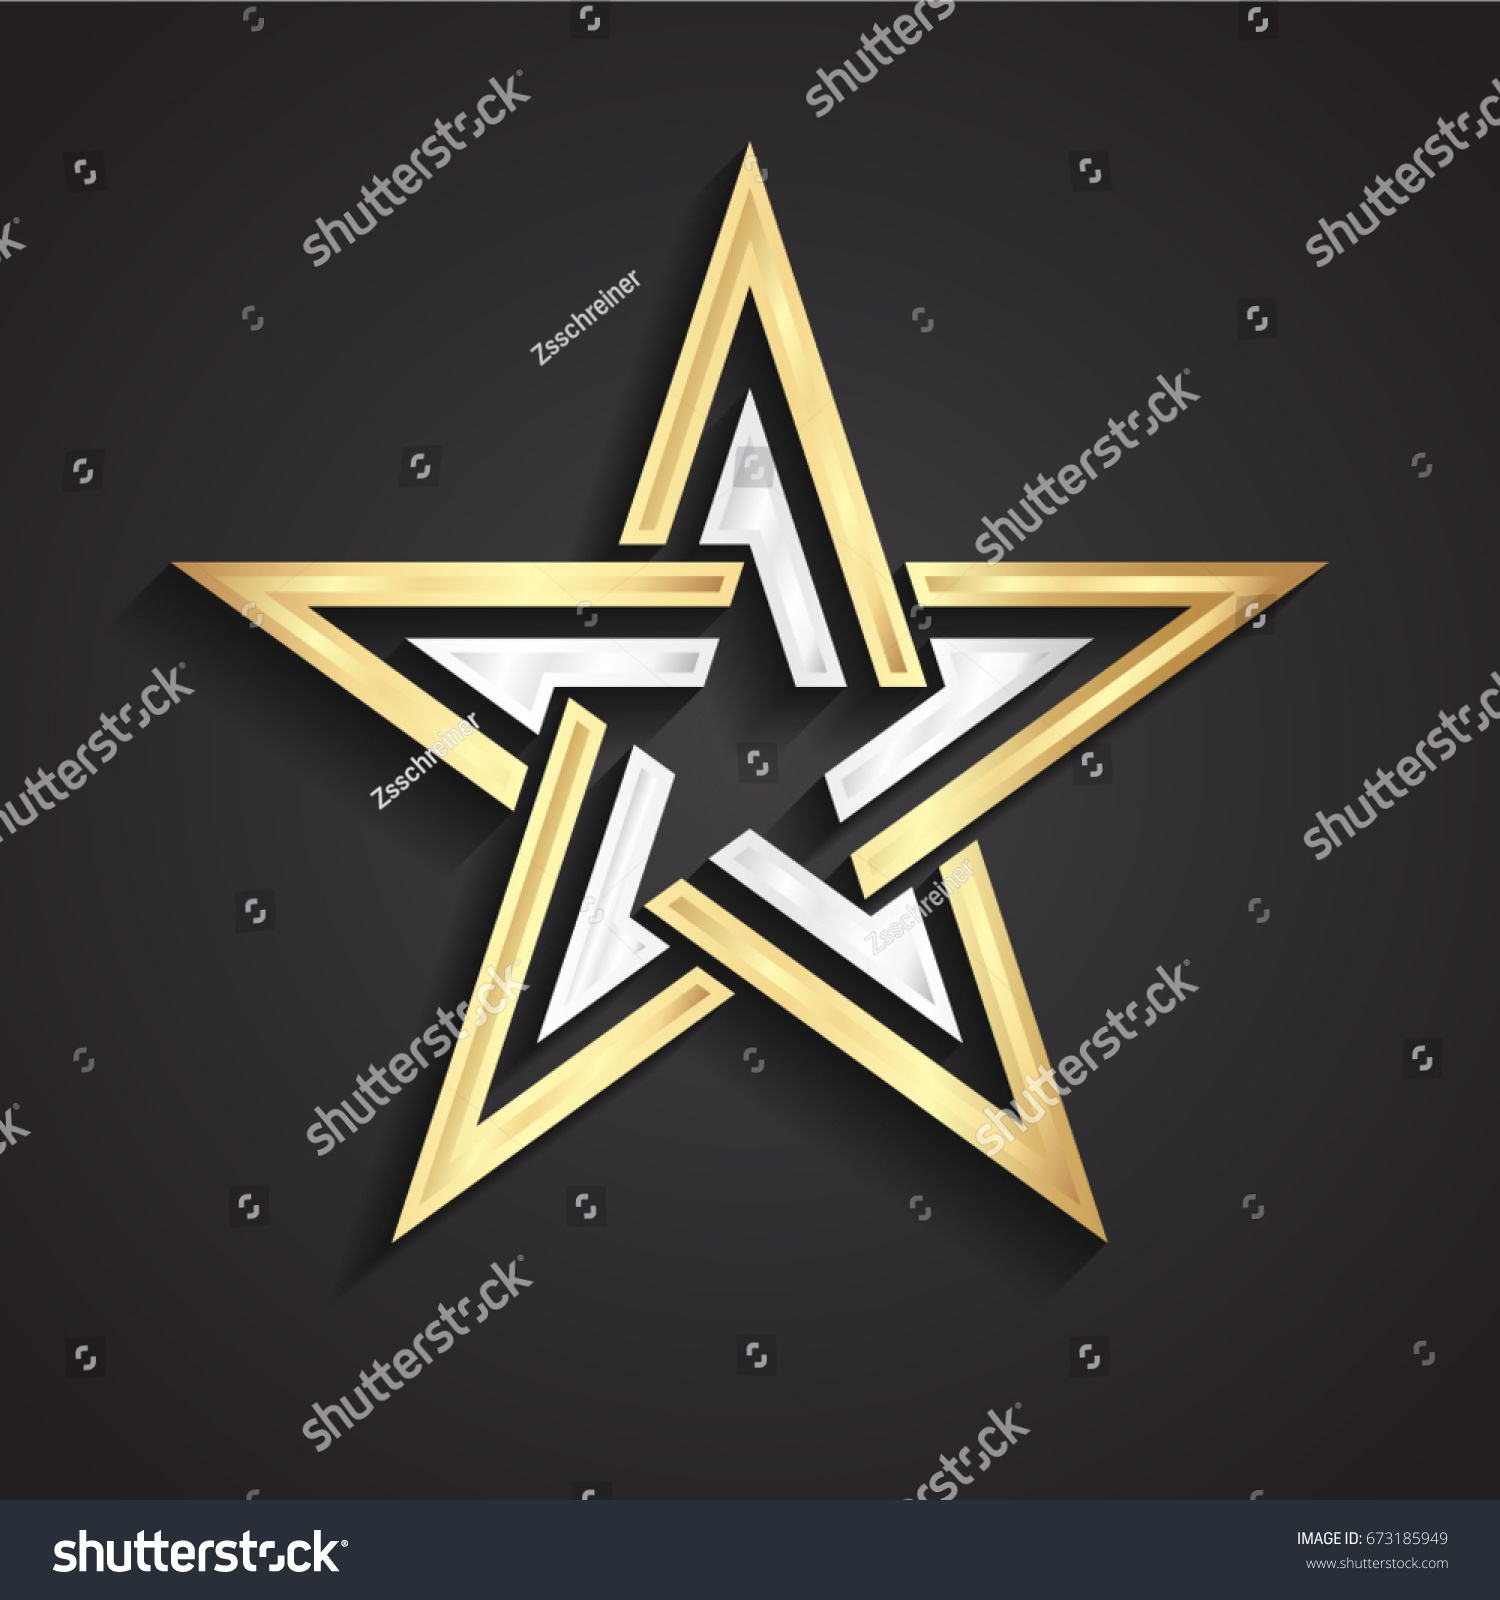 3d beautiful shape silver gold star stock vector 673185949 3d beautiful shape silver gold star symbol biocorpaavc Choice Image